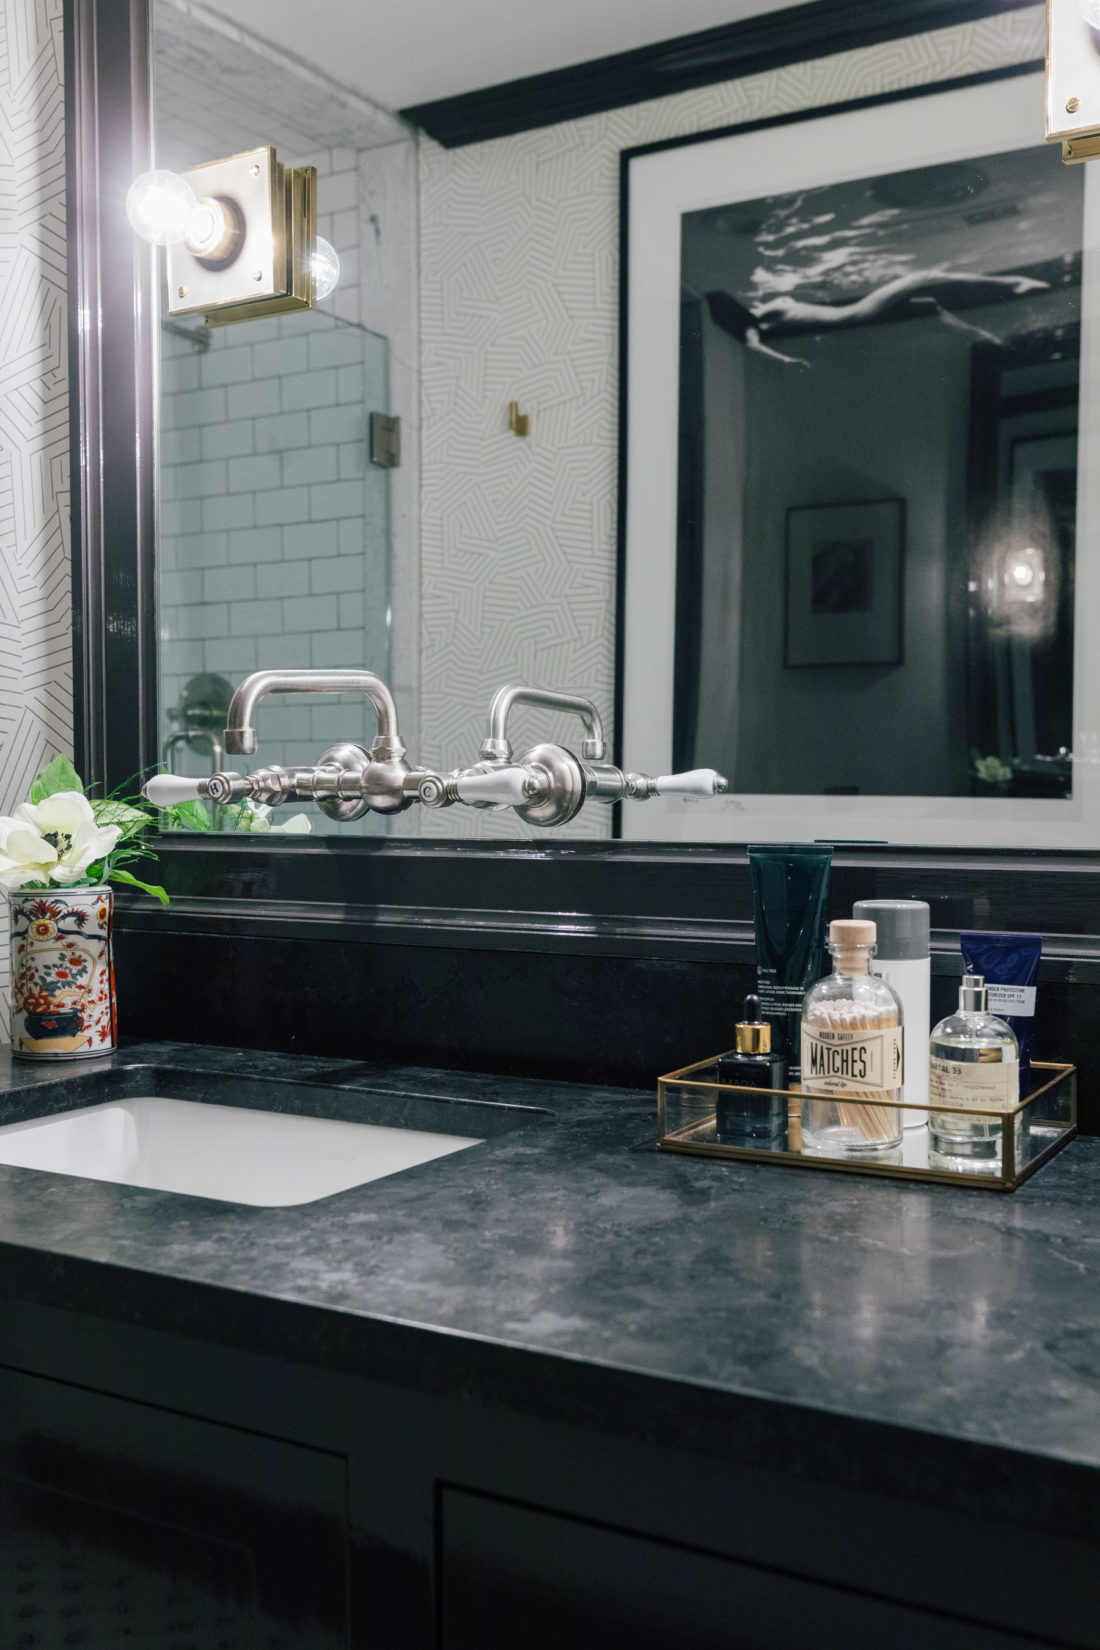 The Saint Henry Black granite countertop from Polycor inside Kyle Martino's masculine bathroom in his newly renovated Connecticut home